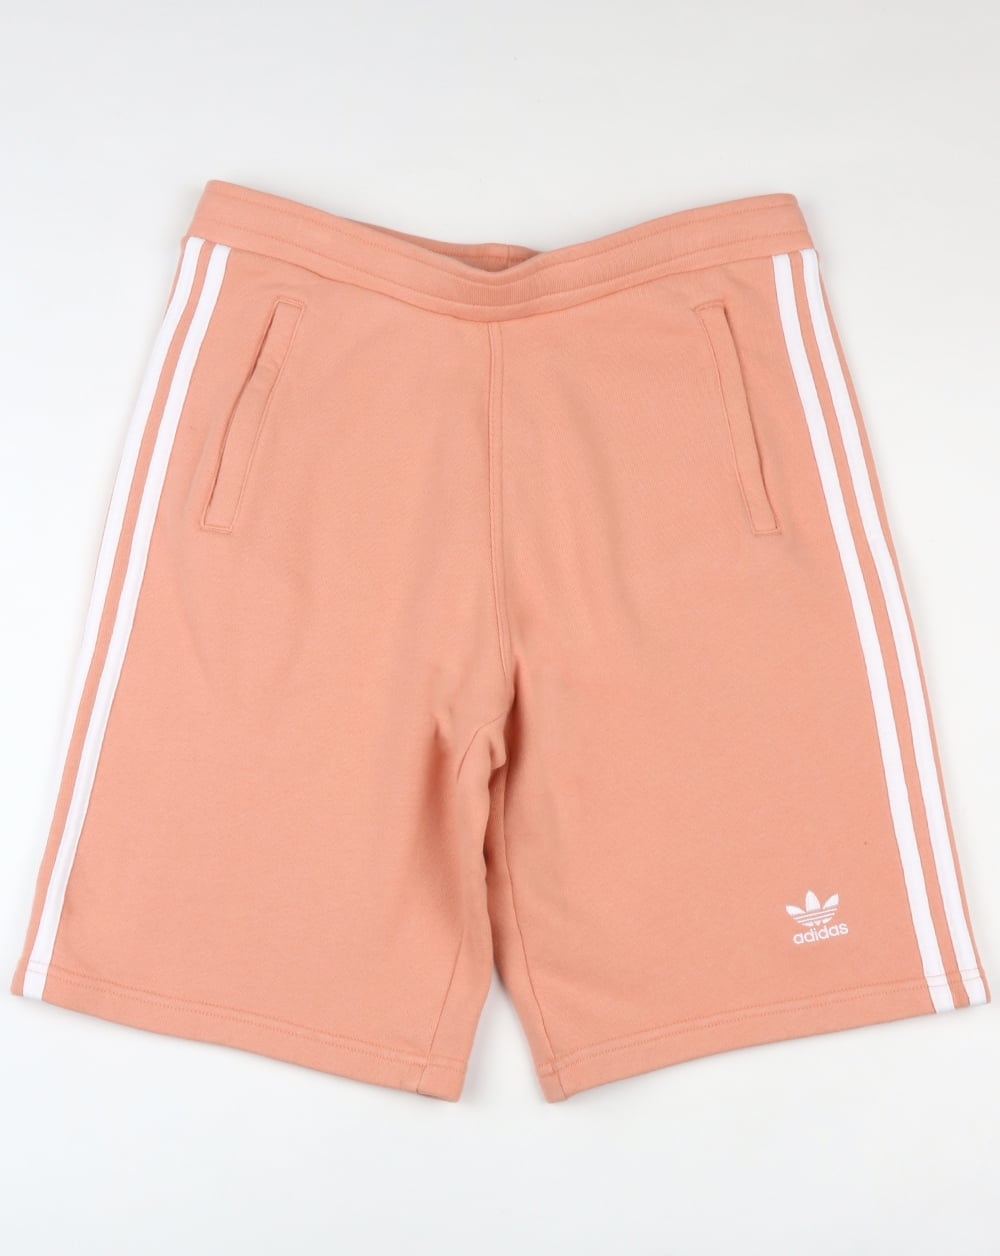 e115881f537be Adidas Originals 3 Stripes Shorts Dust Pink,cotton,terry,toweling ...